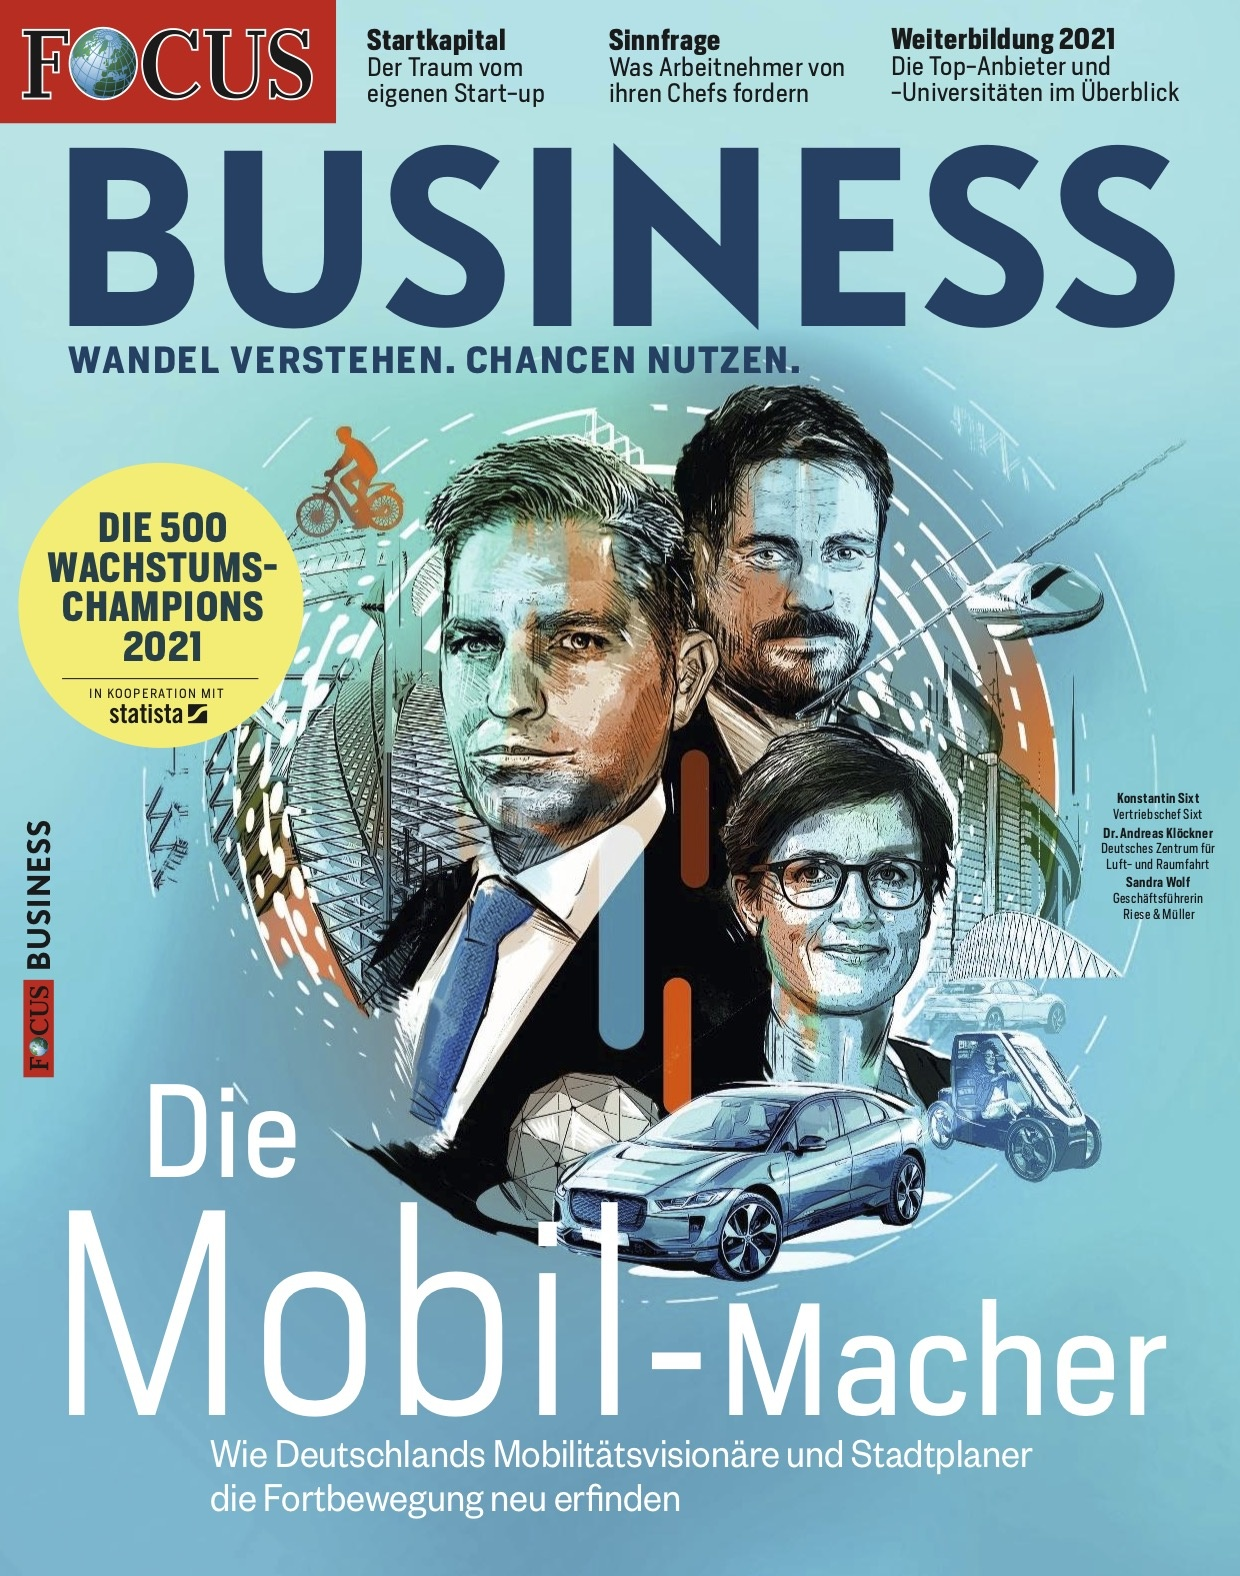 FOCUS-BUSINESS FOCUS BUSINESS - Wachstumschampions 2021